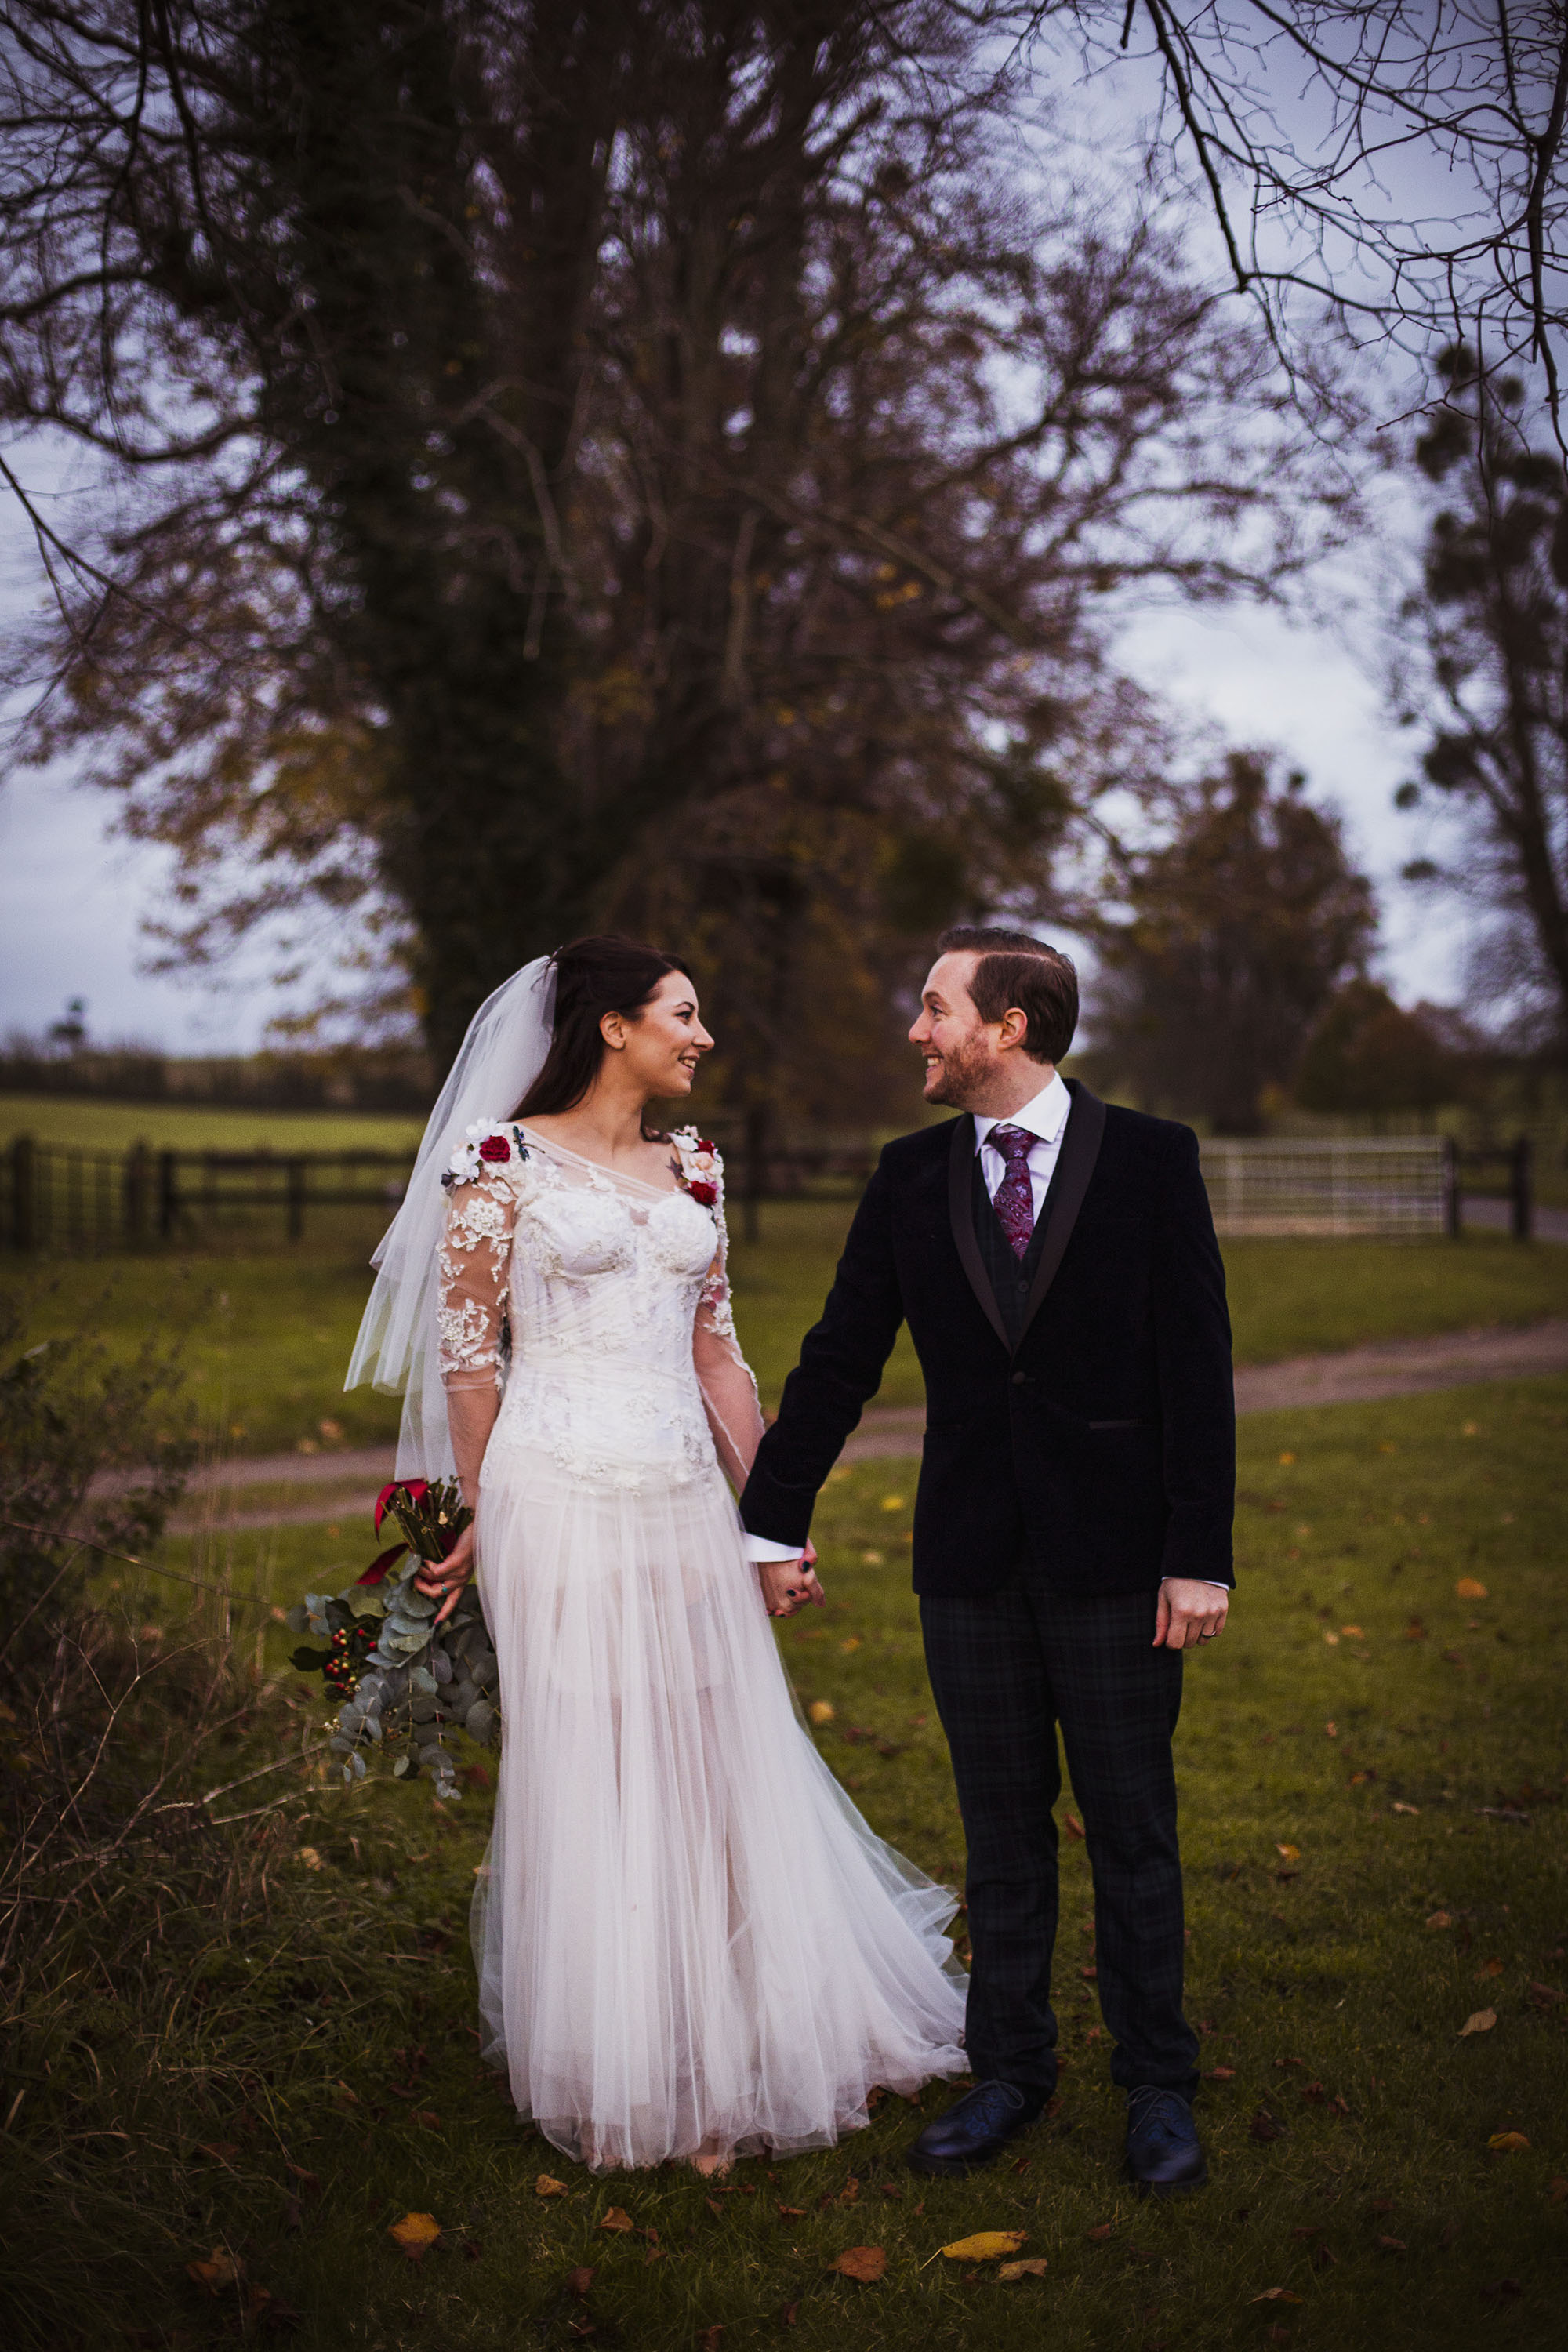 bride and groom smiling at each other at barford park wedding venue in wiltshire